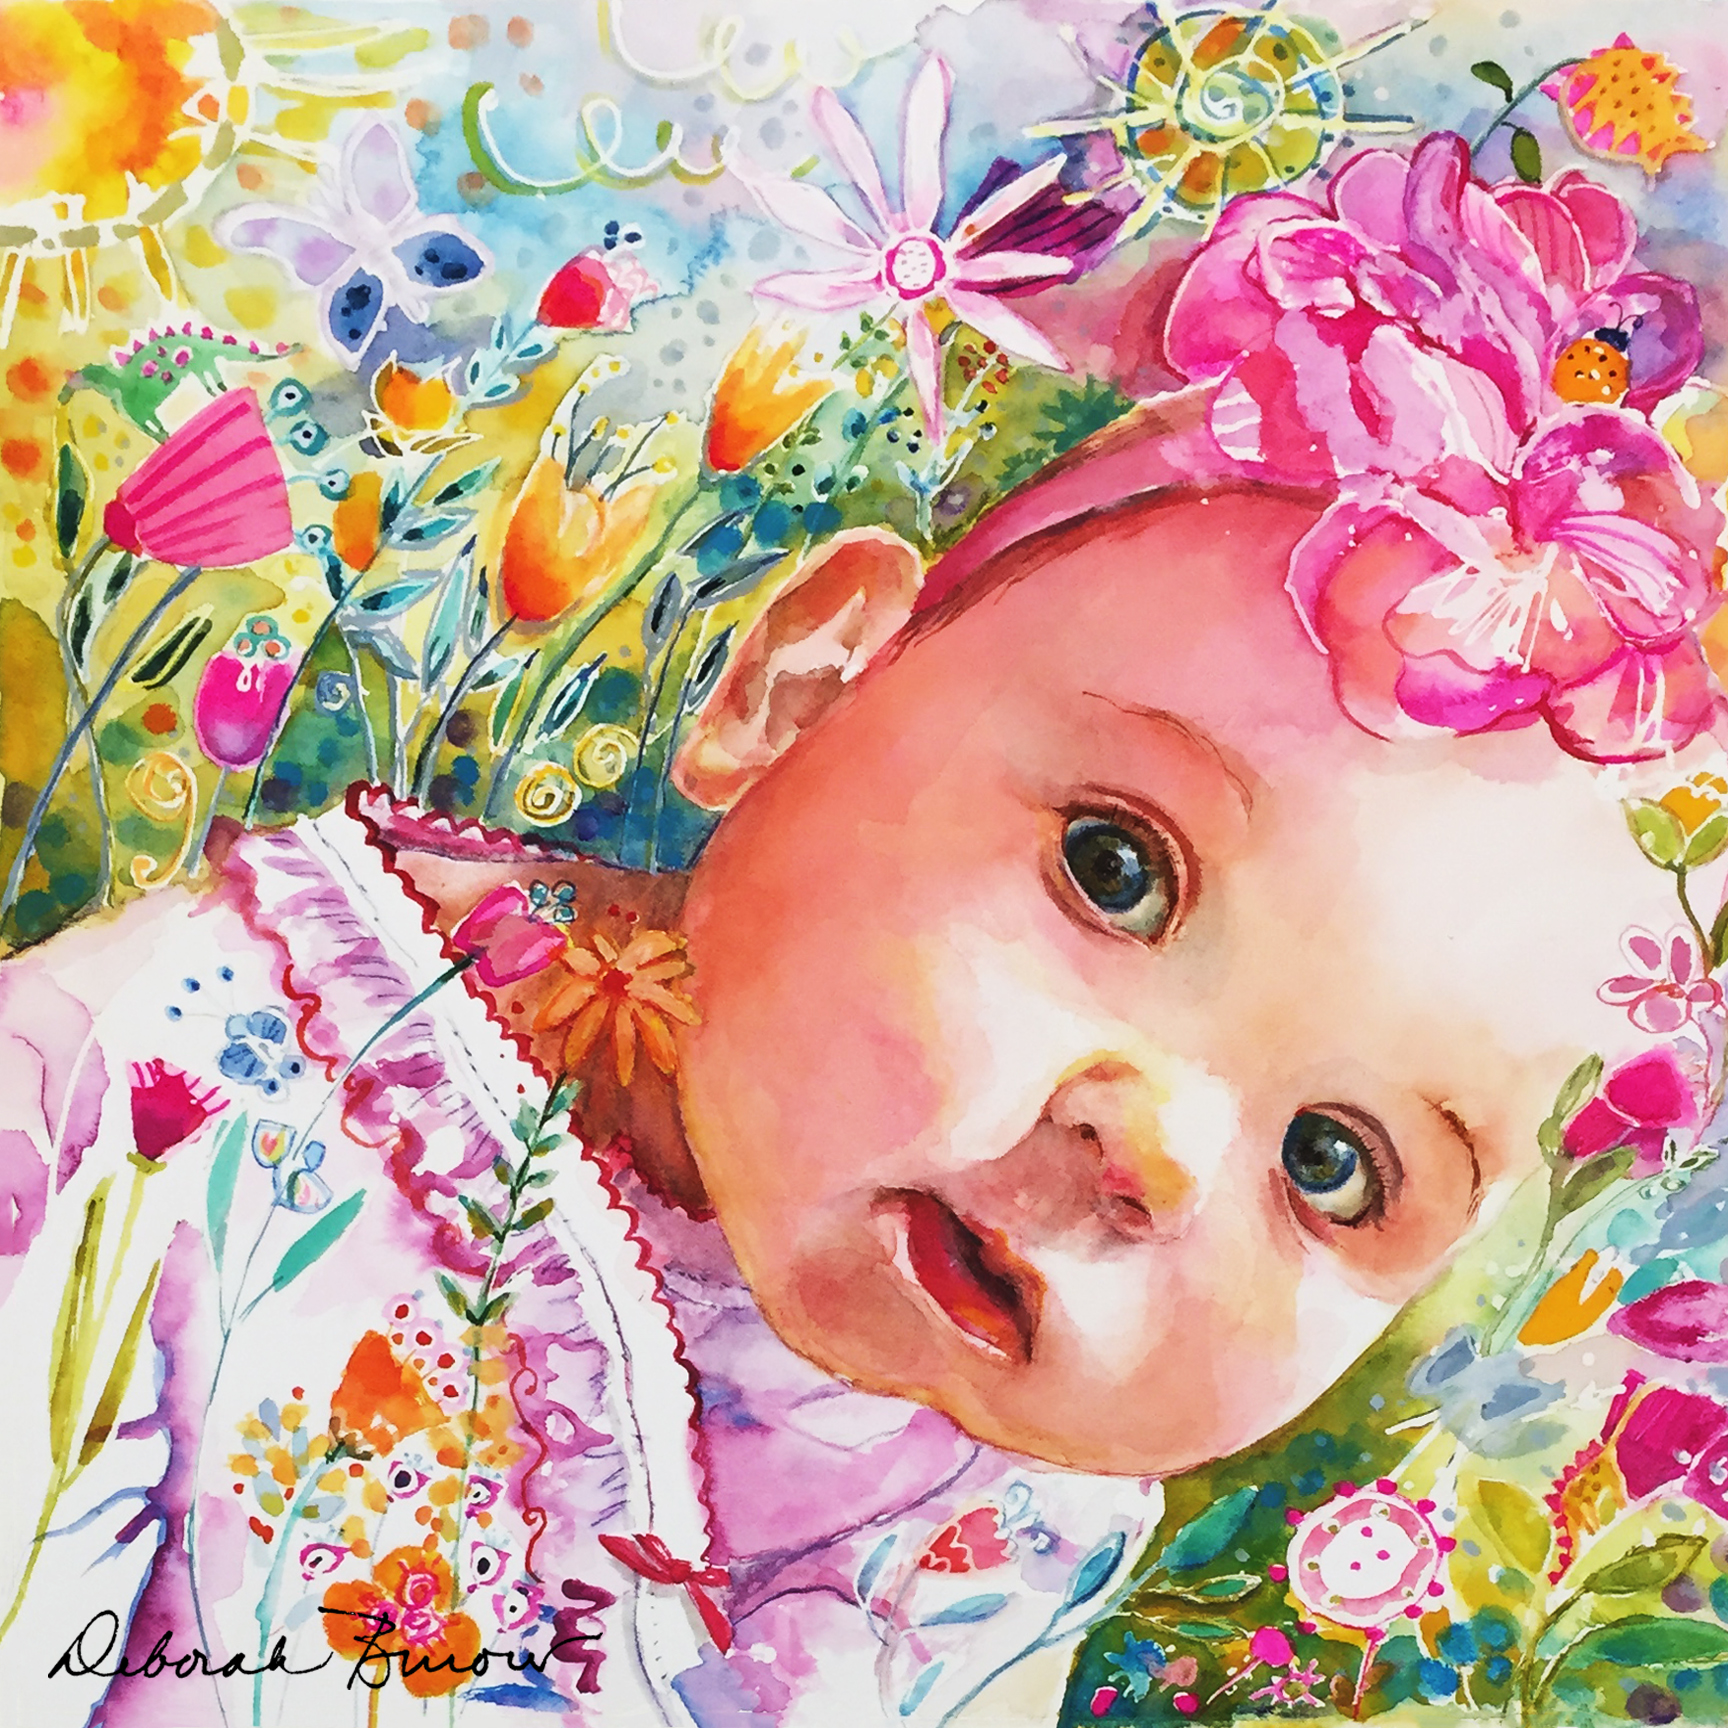 PEOPLE ART--ORDER A COMMISSION OF YOUR SPECIAL      LITTLE ONES, BIG ONES, YOUNG ONES, OLD ONES. WE WORK FROM YOUR PHOTOS.